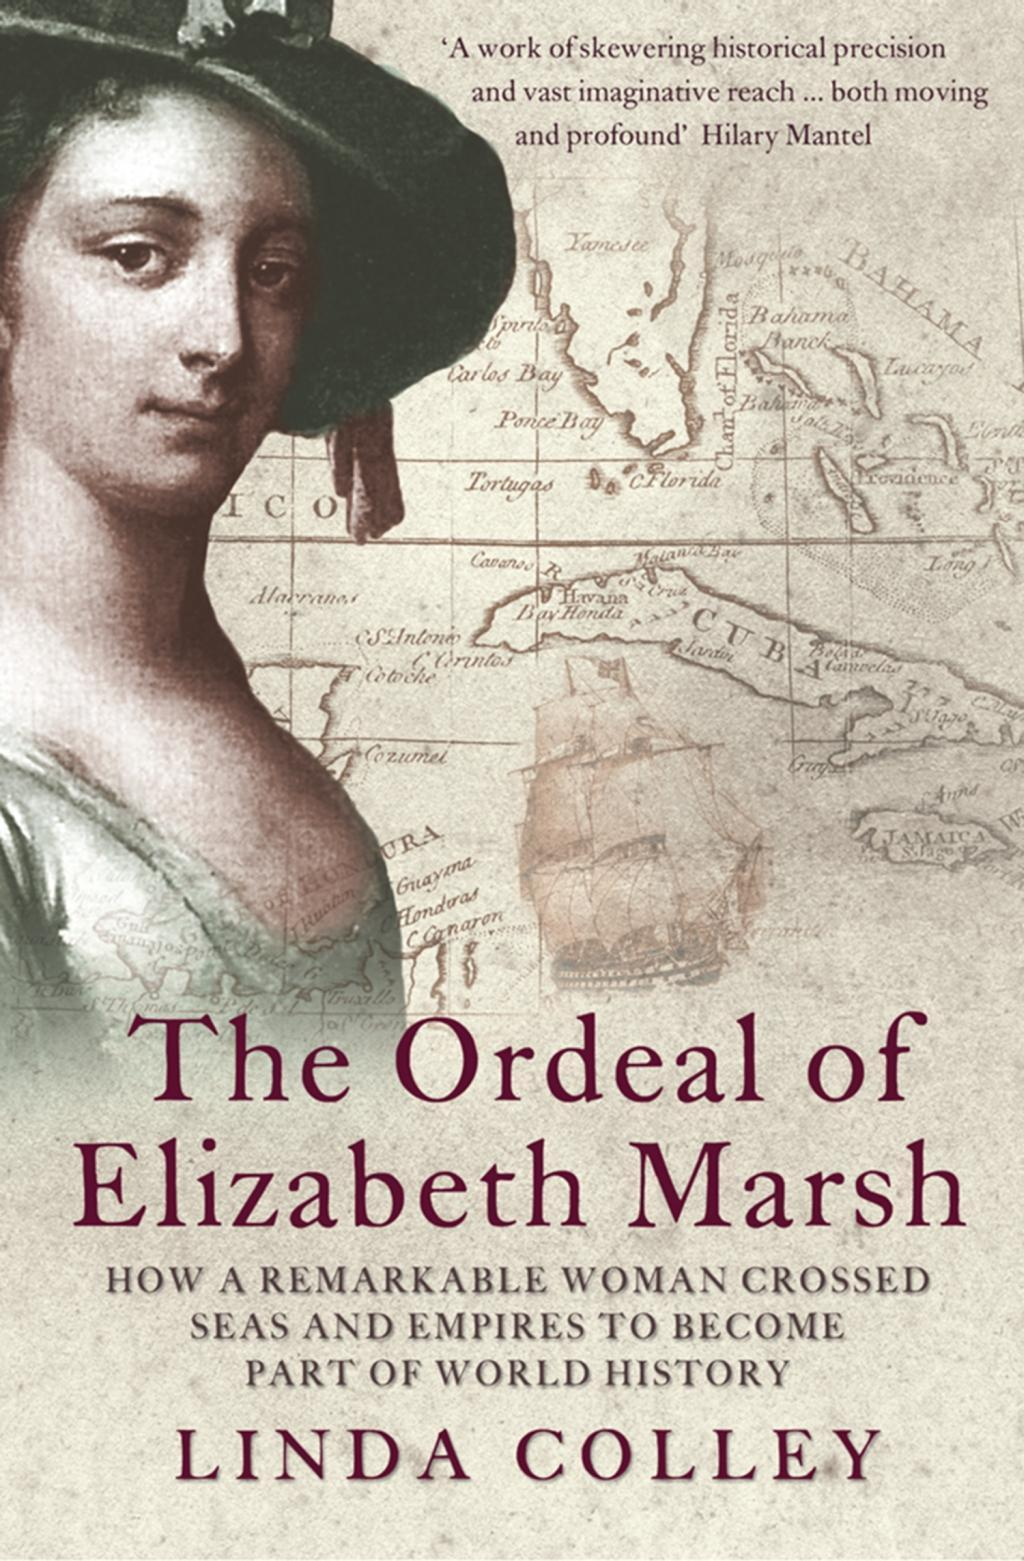 The Ordeal of Elizabeth Marsh: How a Remarkable Woman Crossed Seas and Empires to Become Part of World History (Text Only)